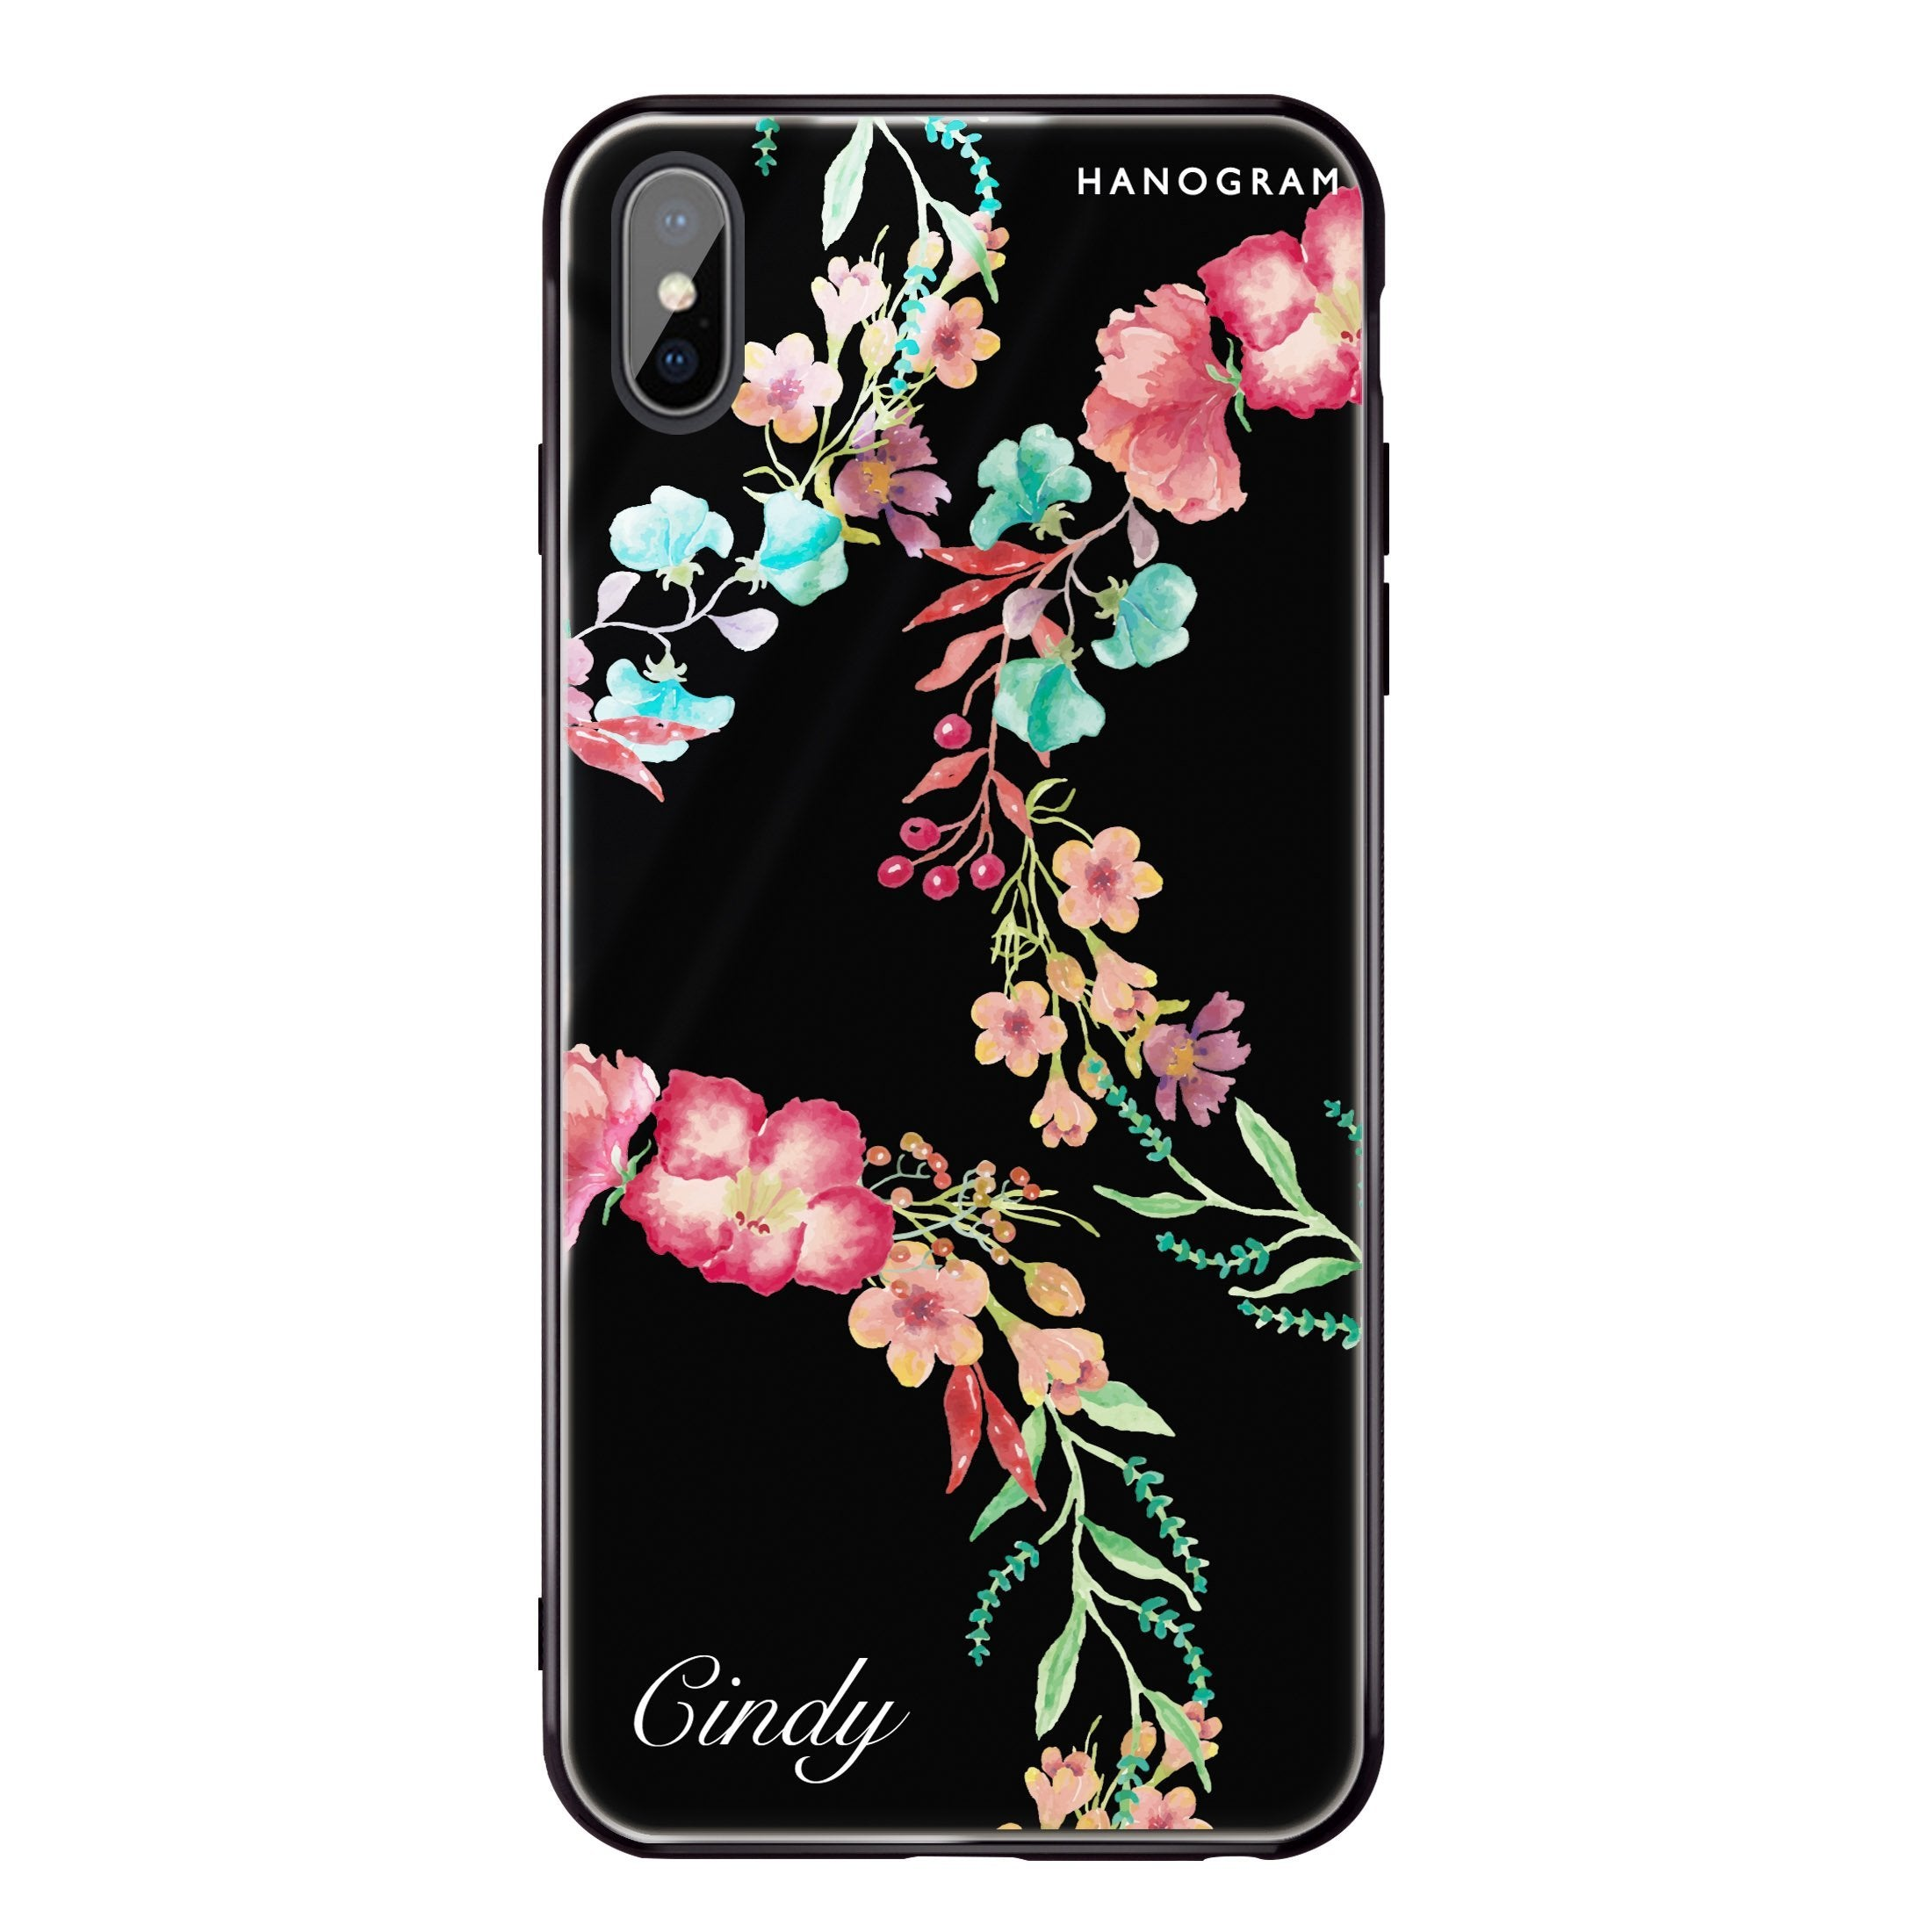 huge selection of 53f54 2b01c Spring Flowers iPhone X Glass Case